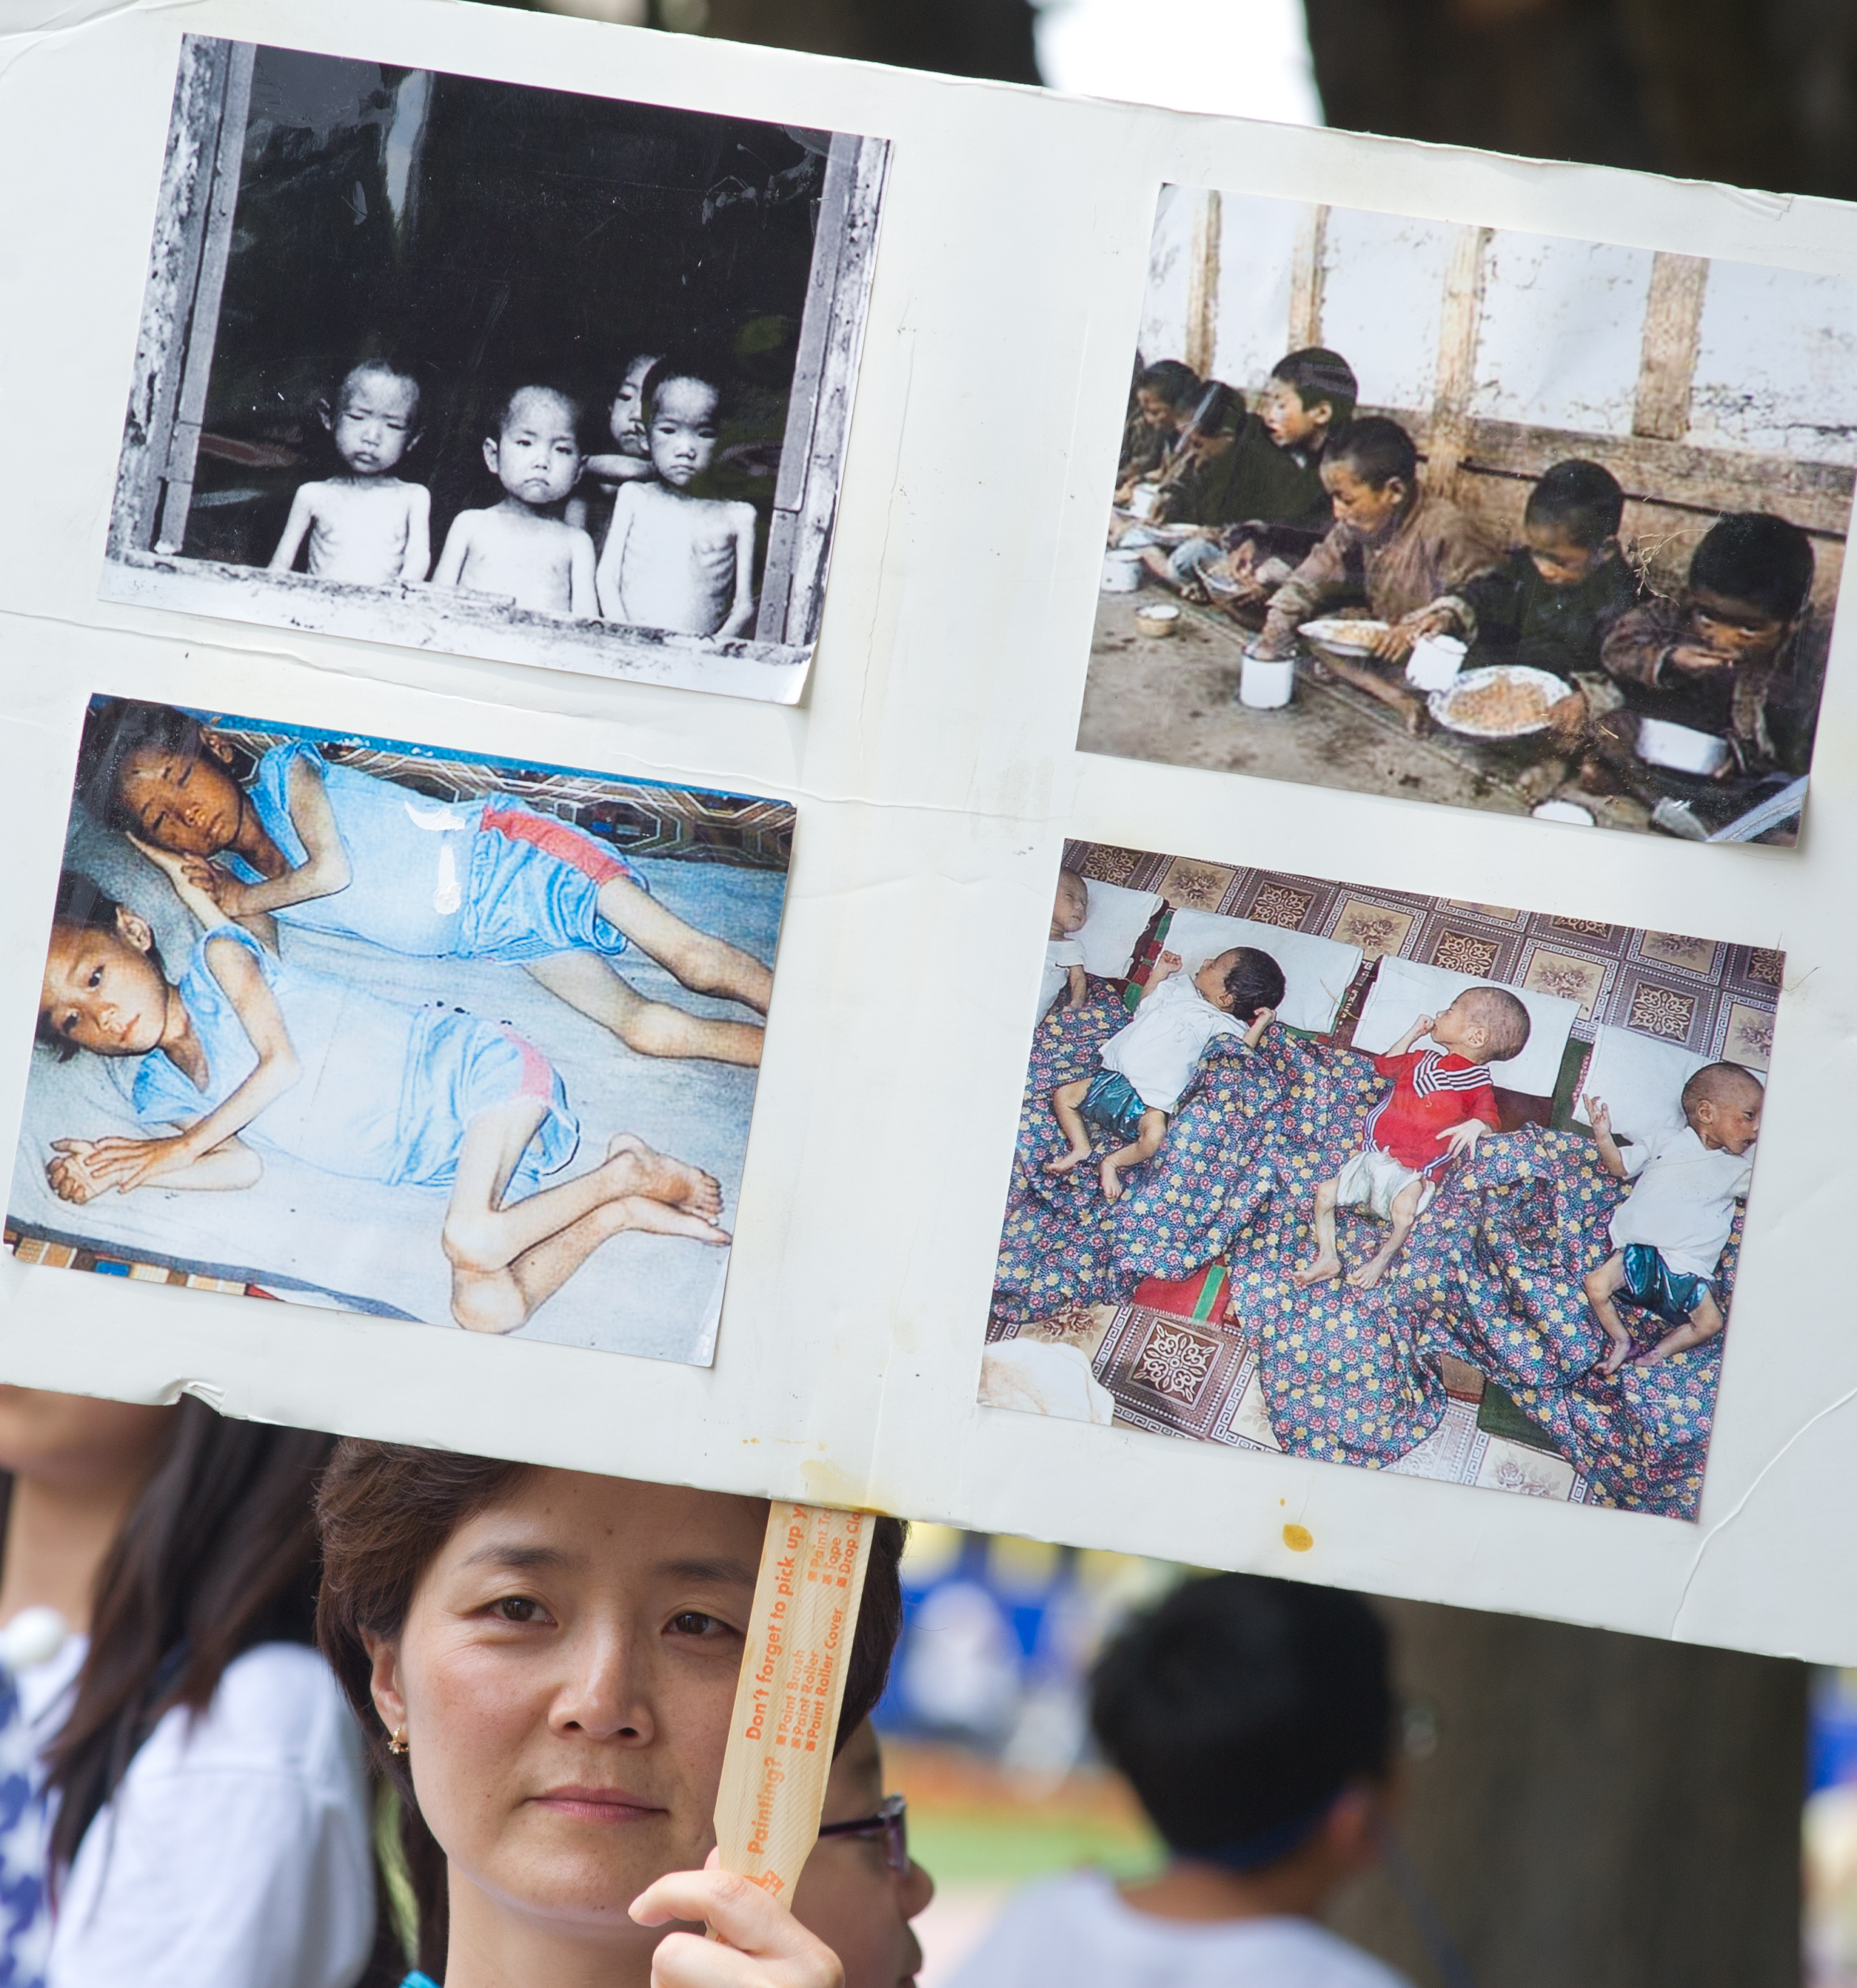 A woman holds up a poster with photos from an internment camp in North Korea during a White House vigil at Lafayette Park July 10, 2012 In Washington, DC. (KAREN BLEIER/AFP/GettyImages)